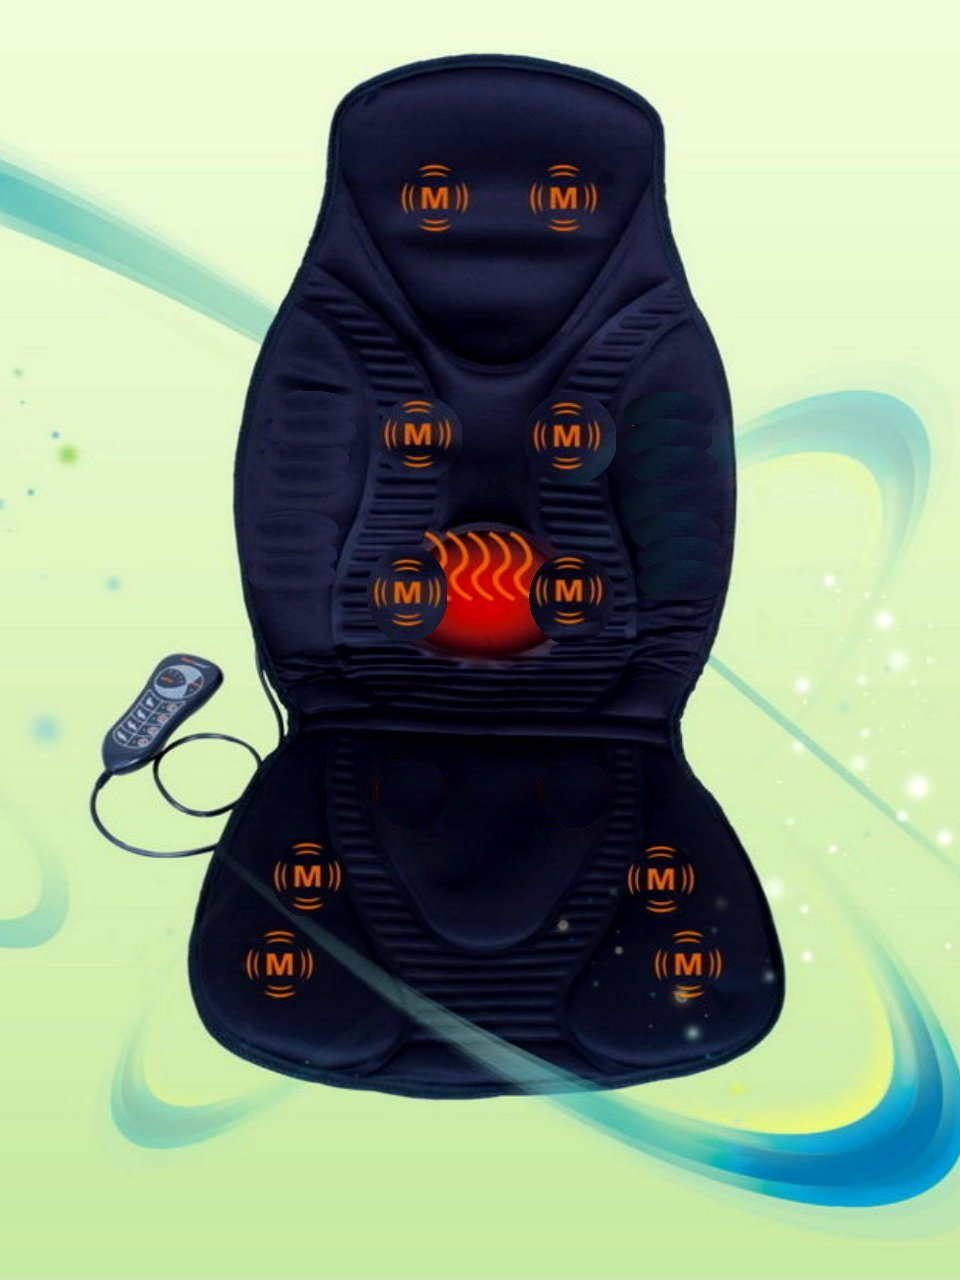 Five Star FS8812 massage seat cushion  Massage Chair HQ